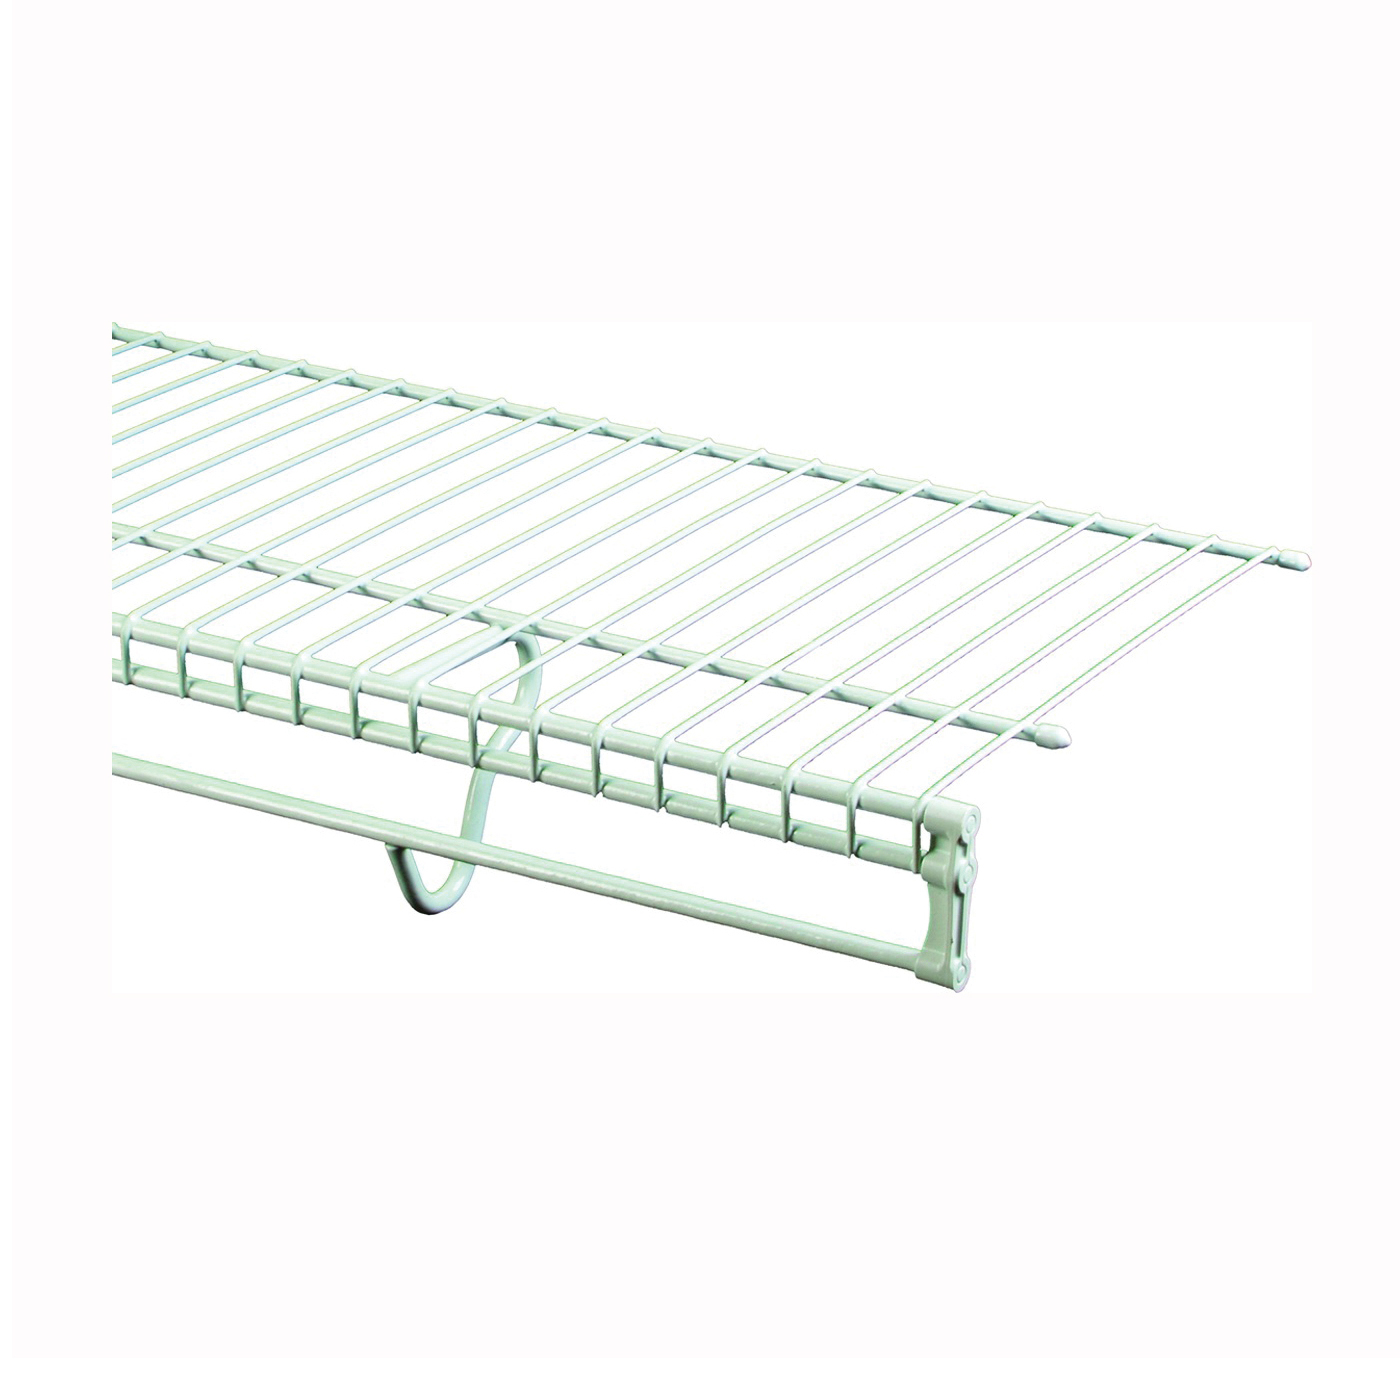 Picture of ClosetMaid 35919-01 Total Slide Shelf, 16 in OAW, 144 in OAD